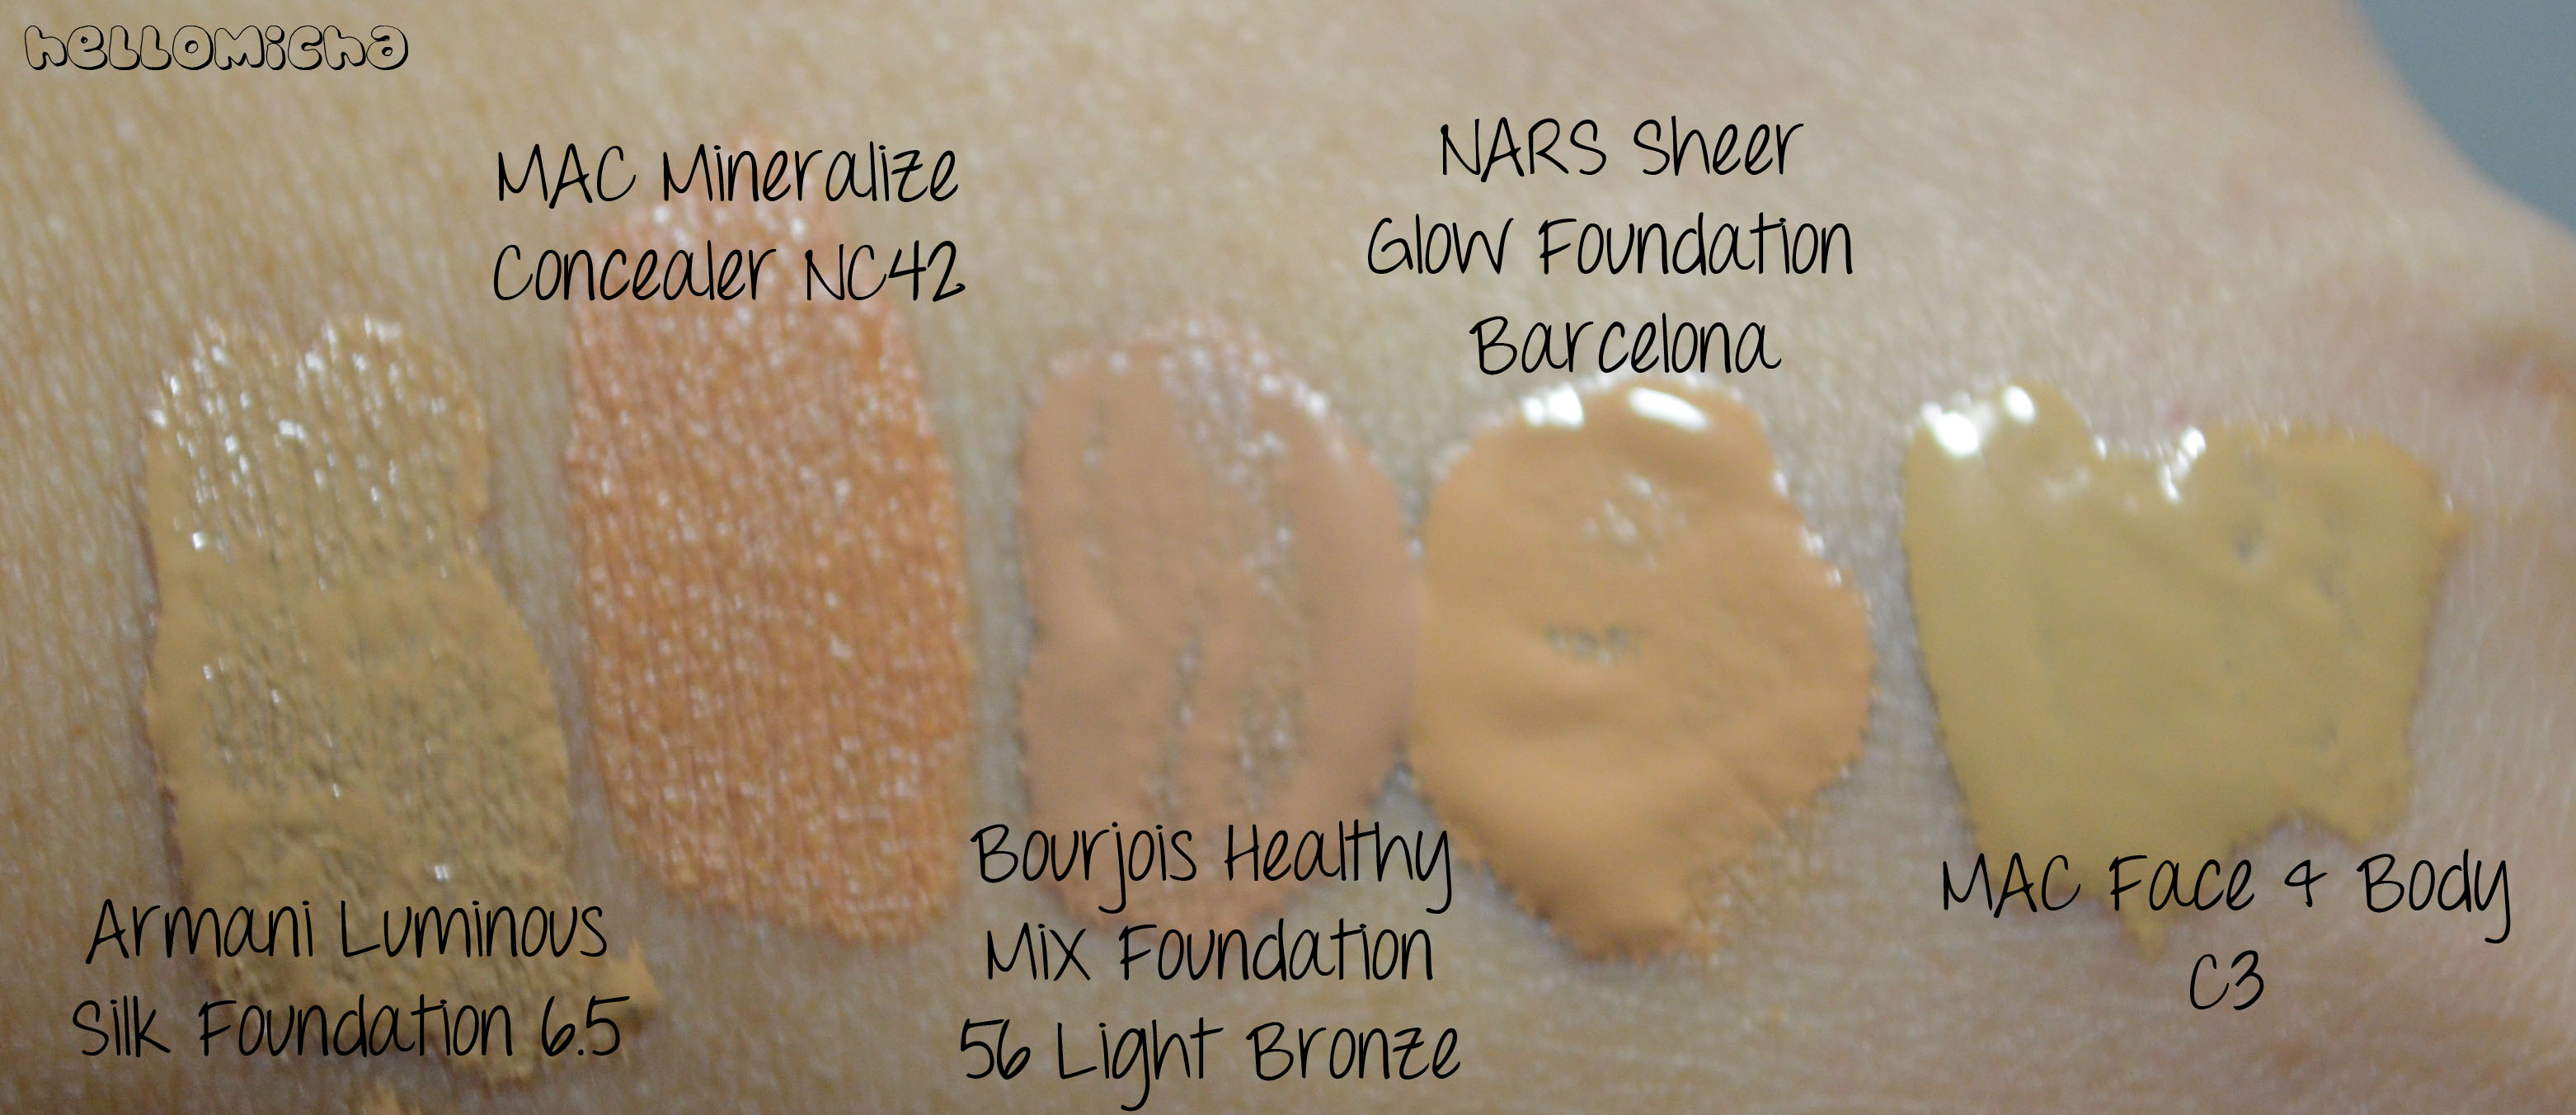 MAC Mineralize Concealer Review | Hello Micha